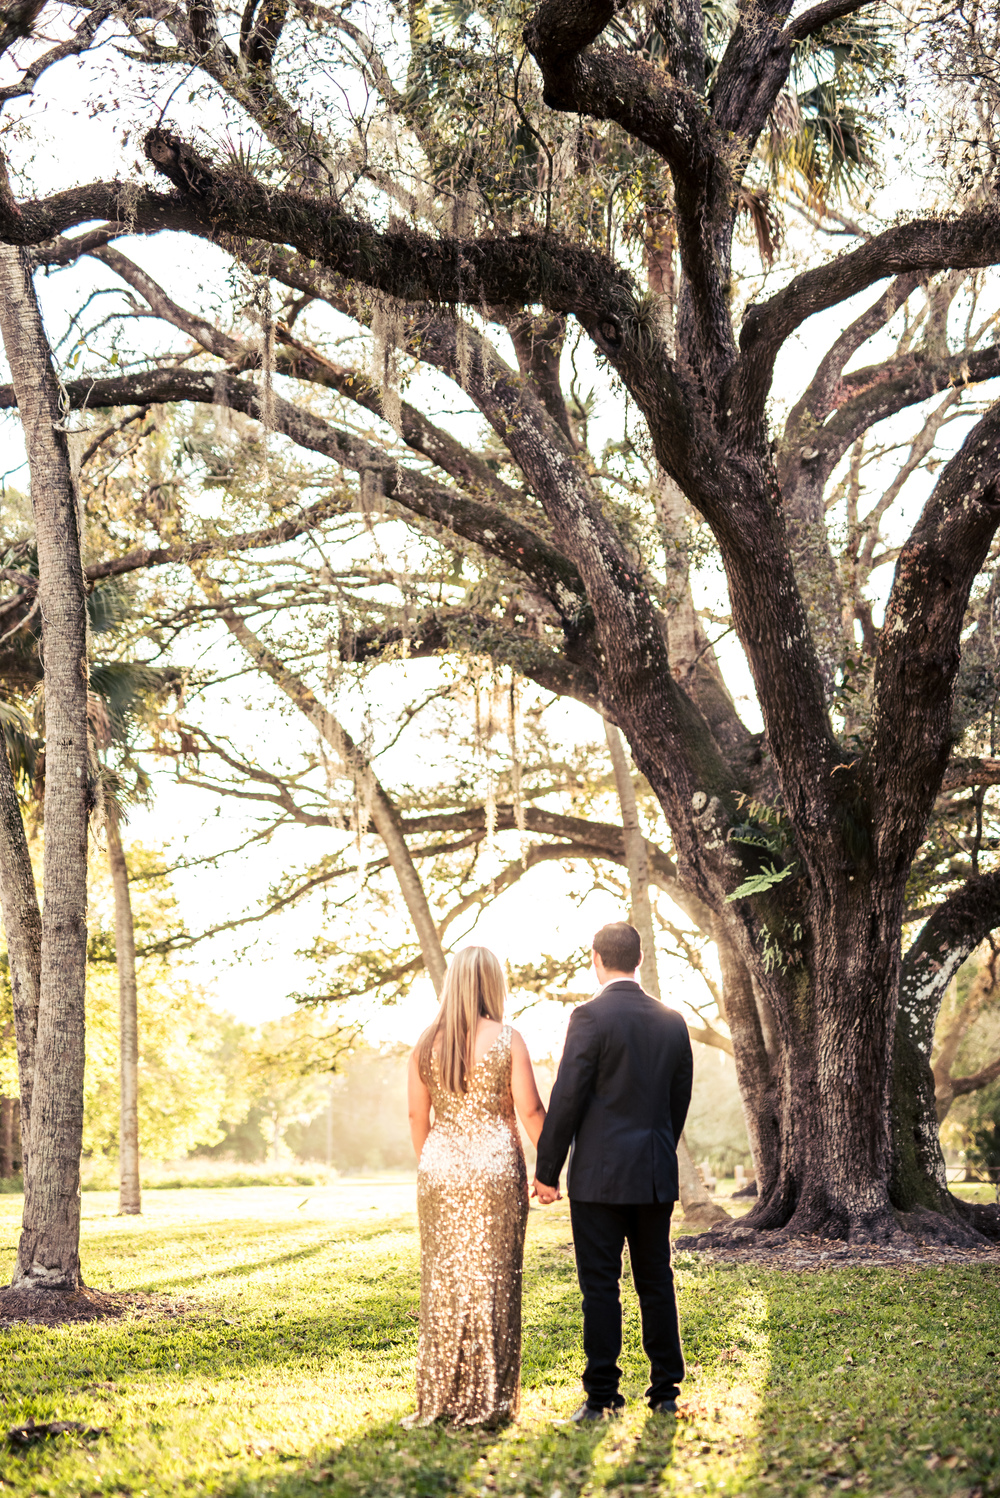 {Lexi&Joe'sEngagementSession}{RiverBendPark}{March2016}-0059.jpg